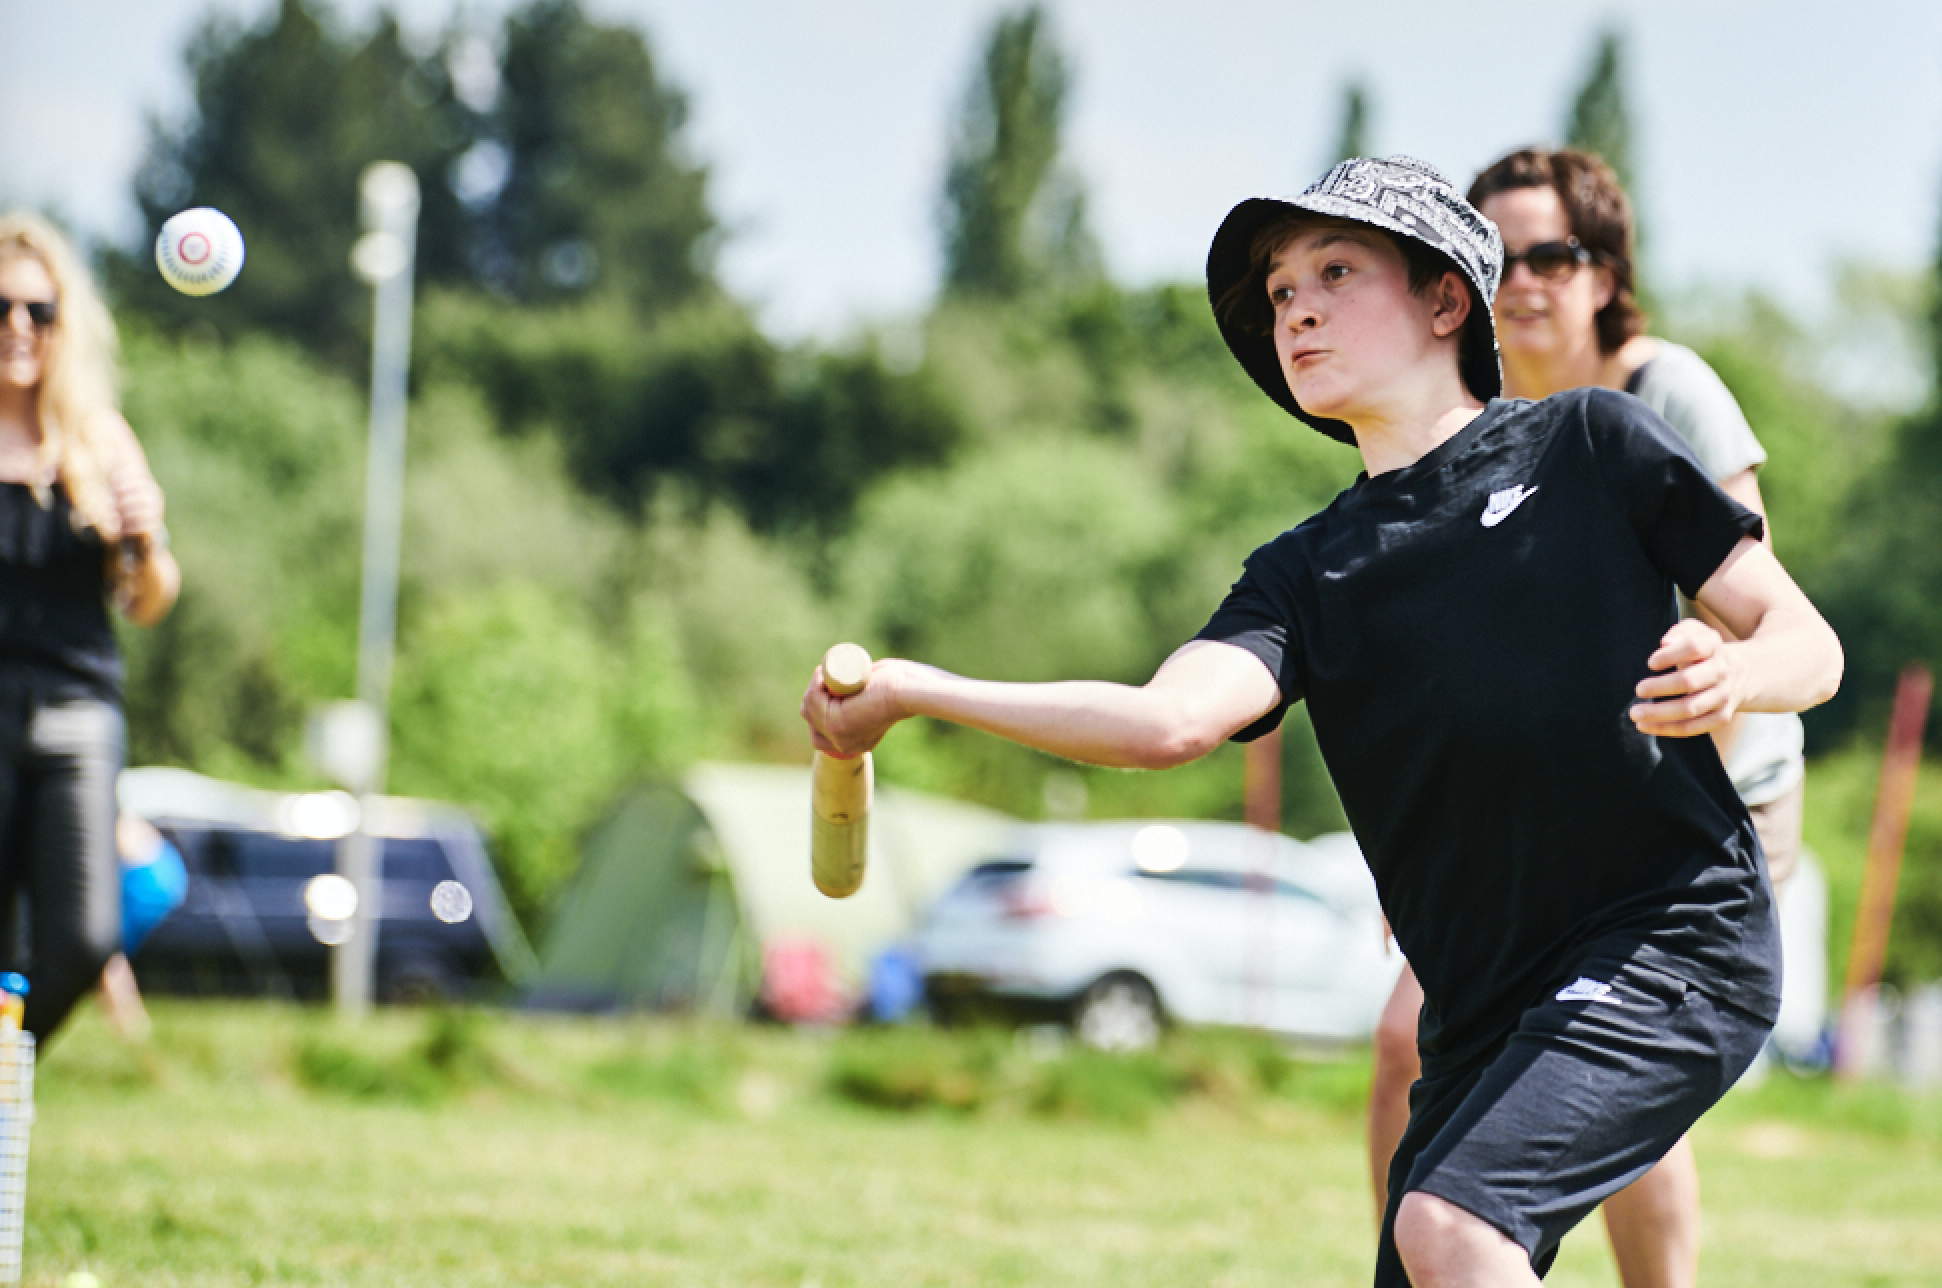 Rounders Search for Lockdown Heroes and launches 'Pass the Bat'